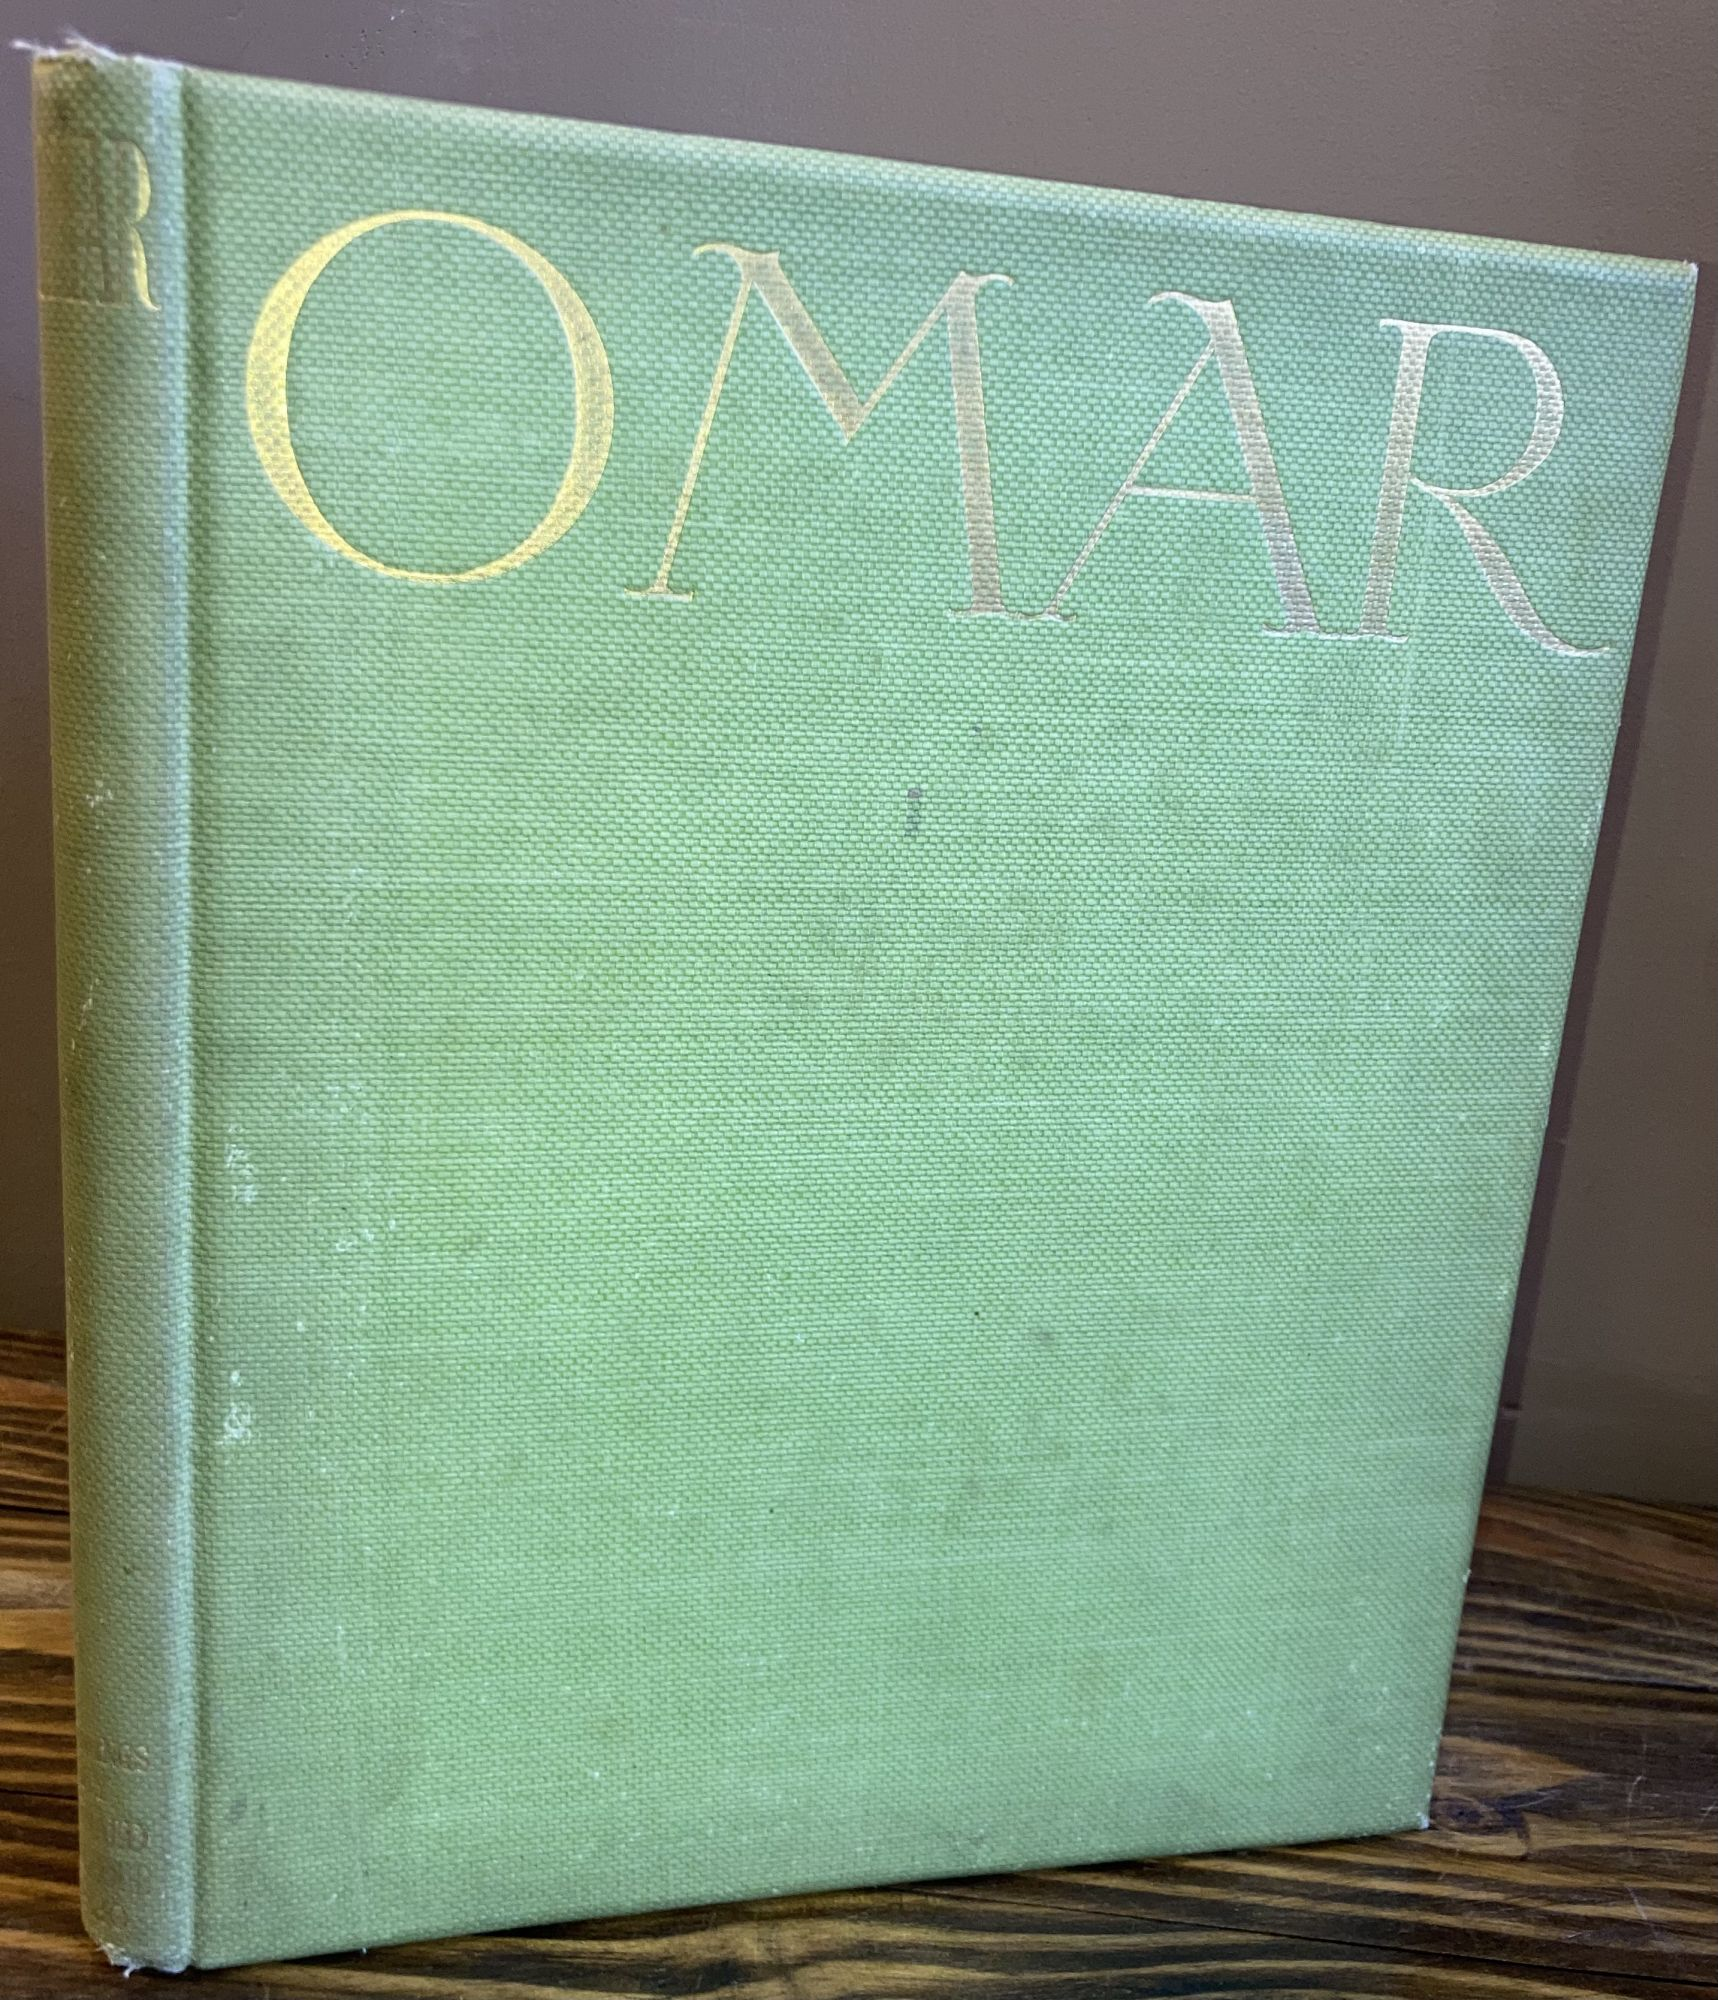 THE RUBAIYAT OF OMAR KHAYYAM [SIGNED]. Ronald Balfour.